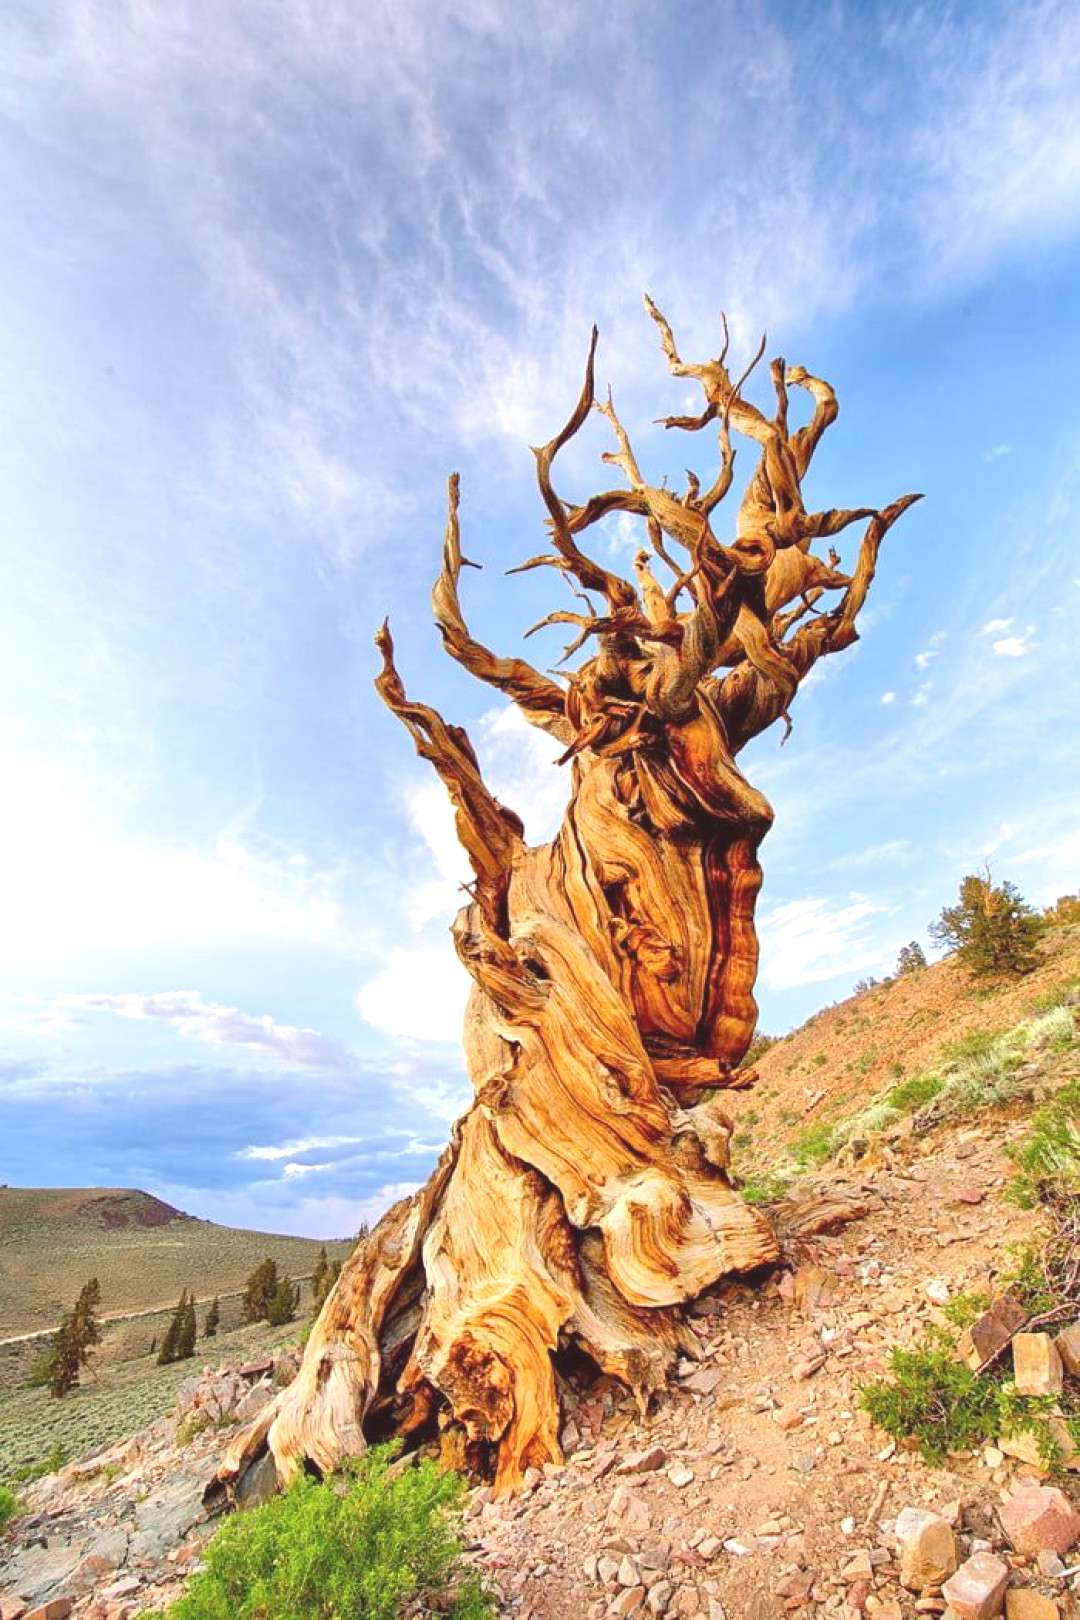 Methuselah, the oldest known tree in the world, is 4,850 years old, meaning it was established duri